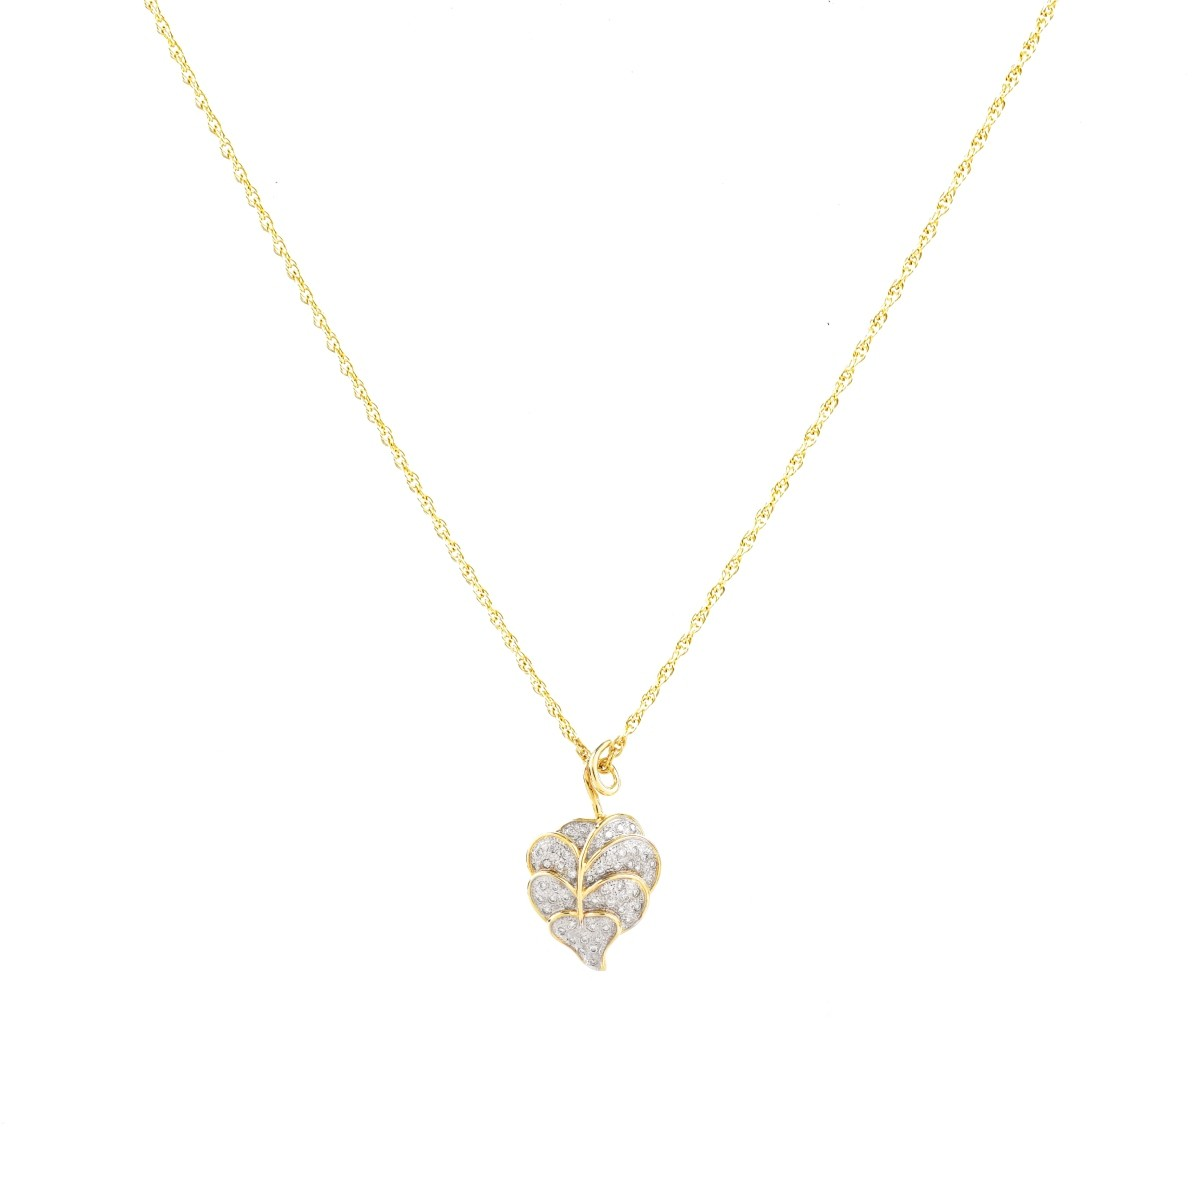 Vintage Diamond and 14K Gold Necklace